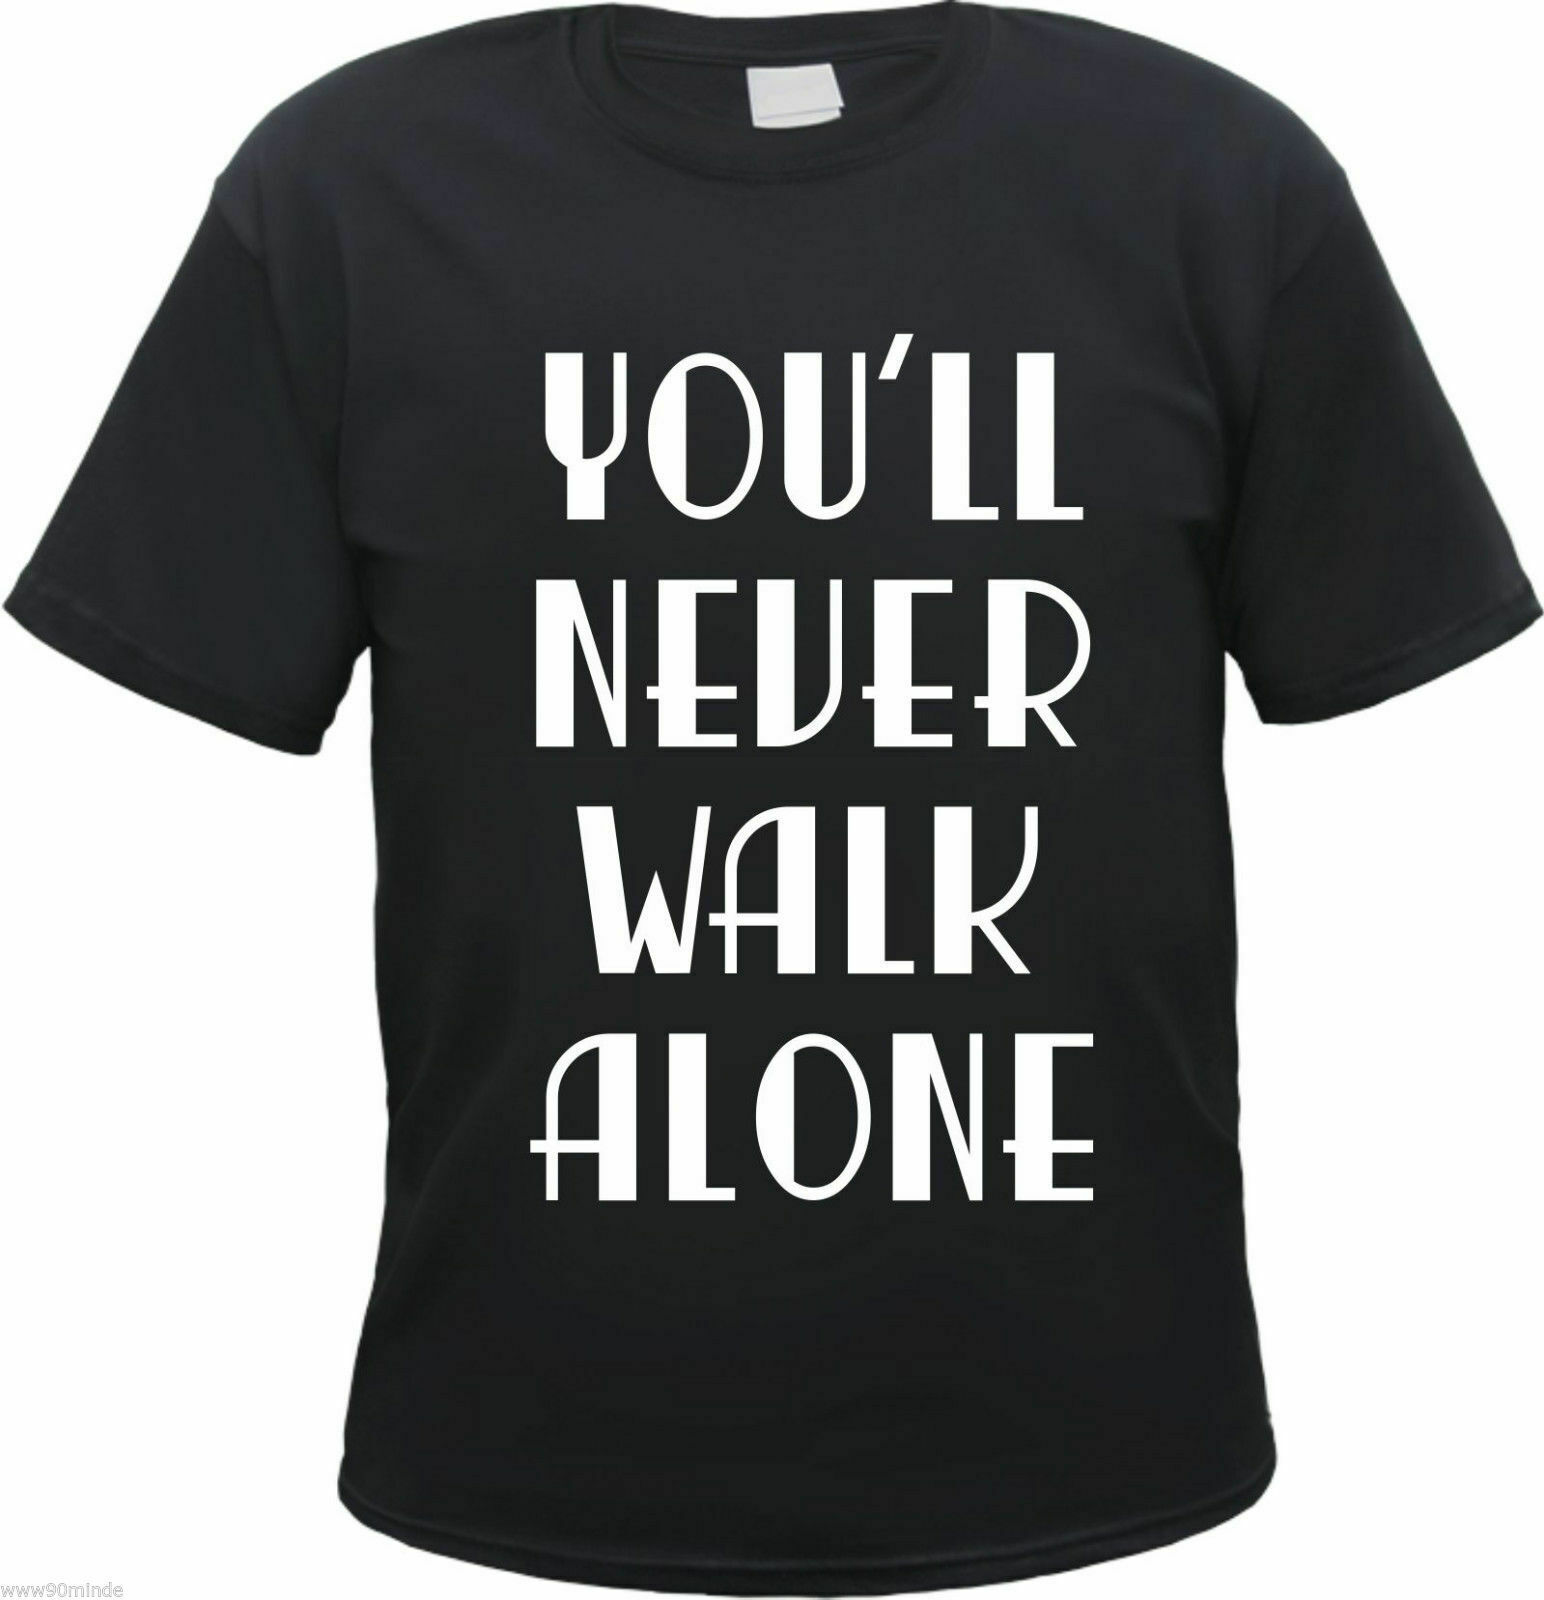 YOU'LL NEVER WALK ALONE Herren T-Shirt - Schwarz - S bis 3XL - ultras fans etc.